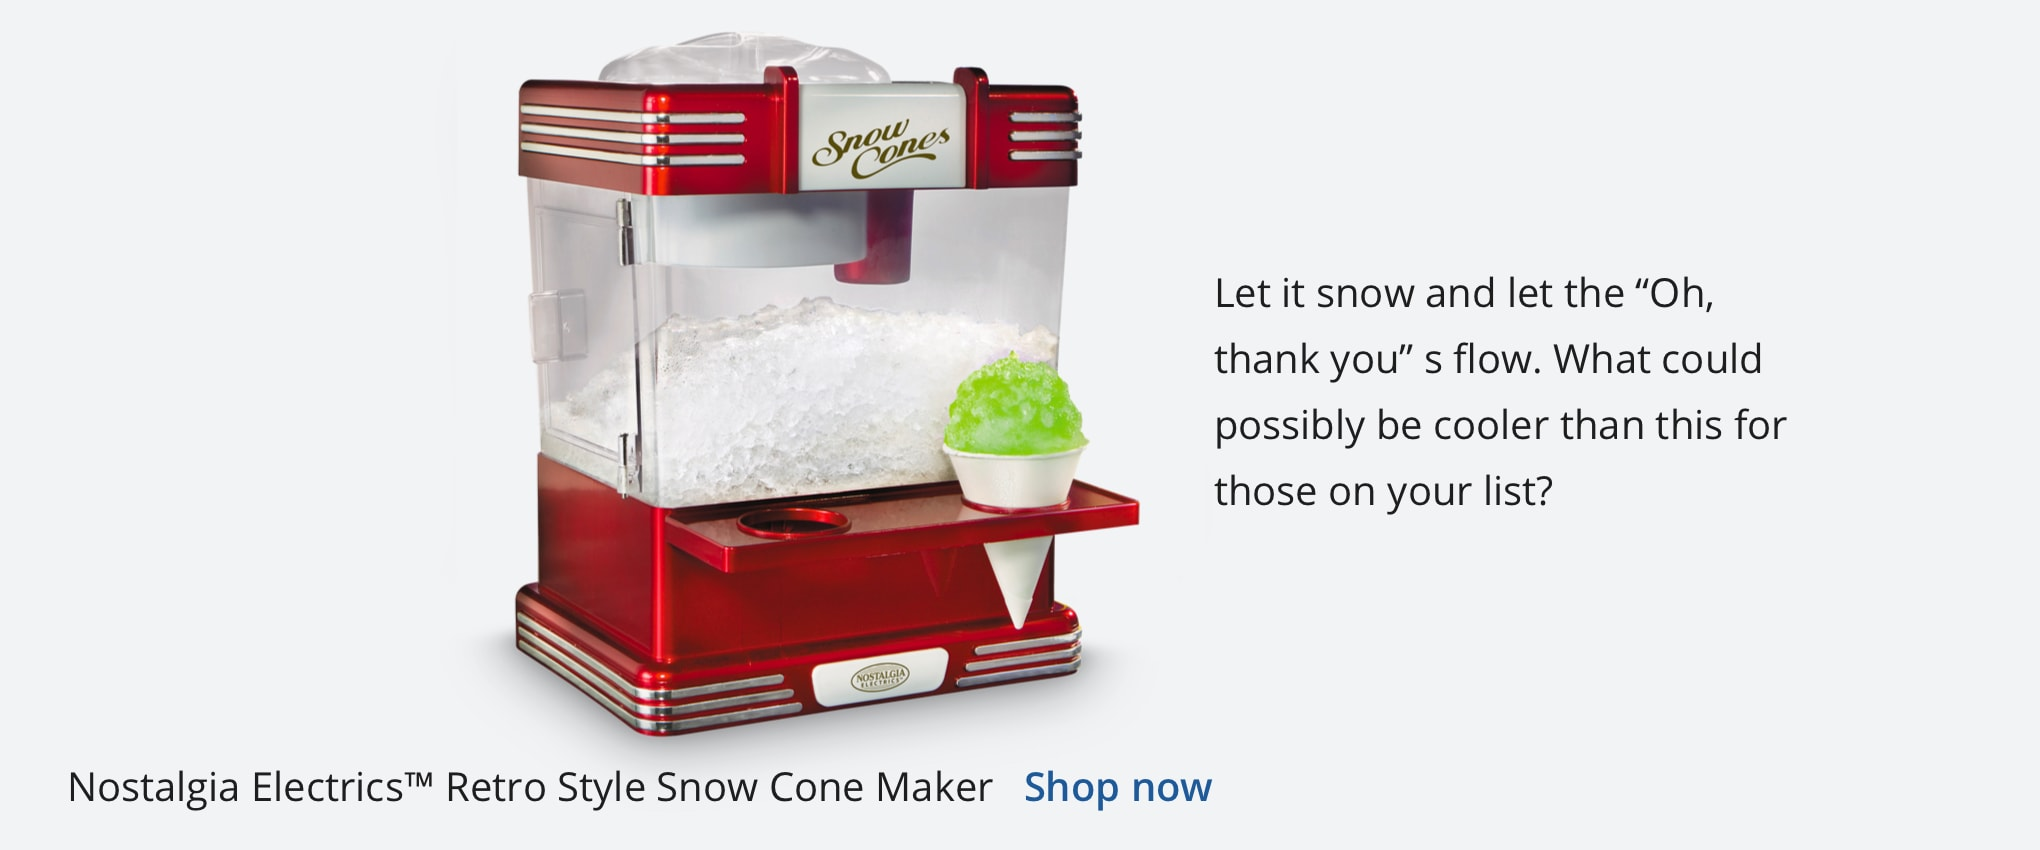 4120_www_gift-guides_2040x850_unique-gifts_snowcone